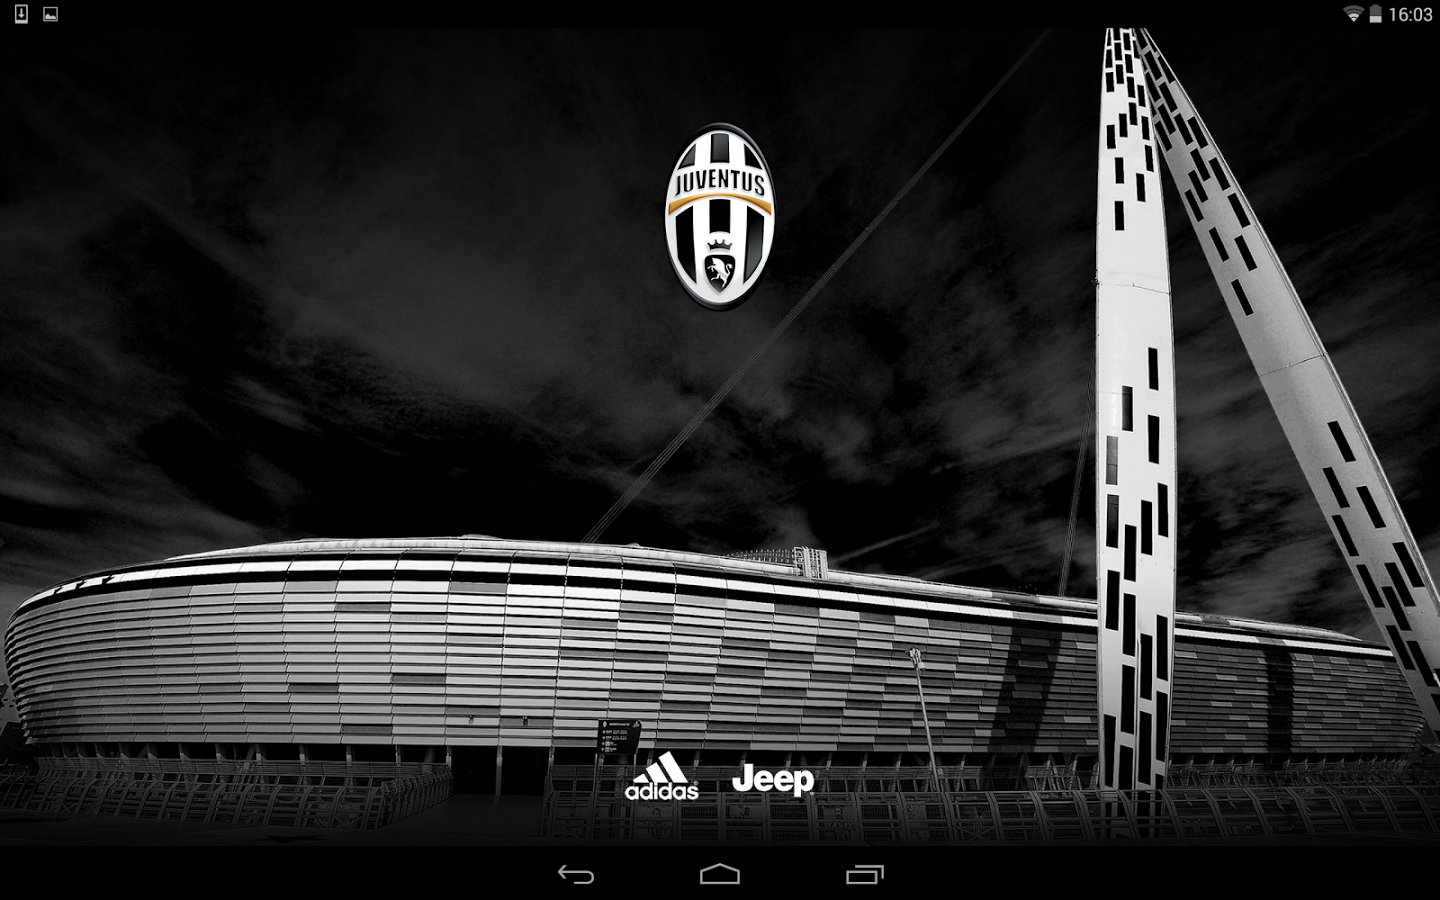 Juventus Wallpaper Smartphone Best Wallpaper Hd Juventus Wallpapers Juventus Manchester United Top